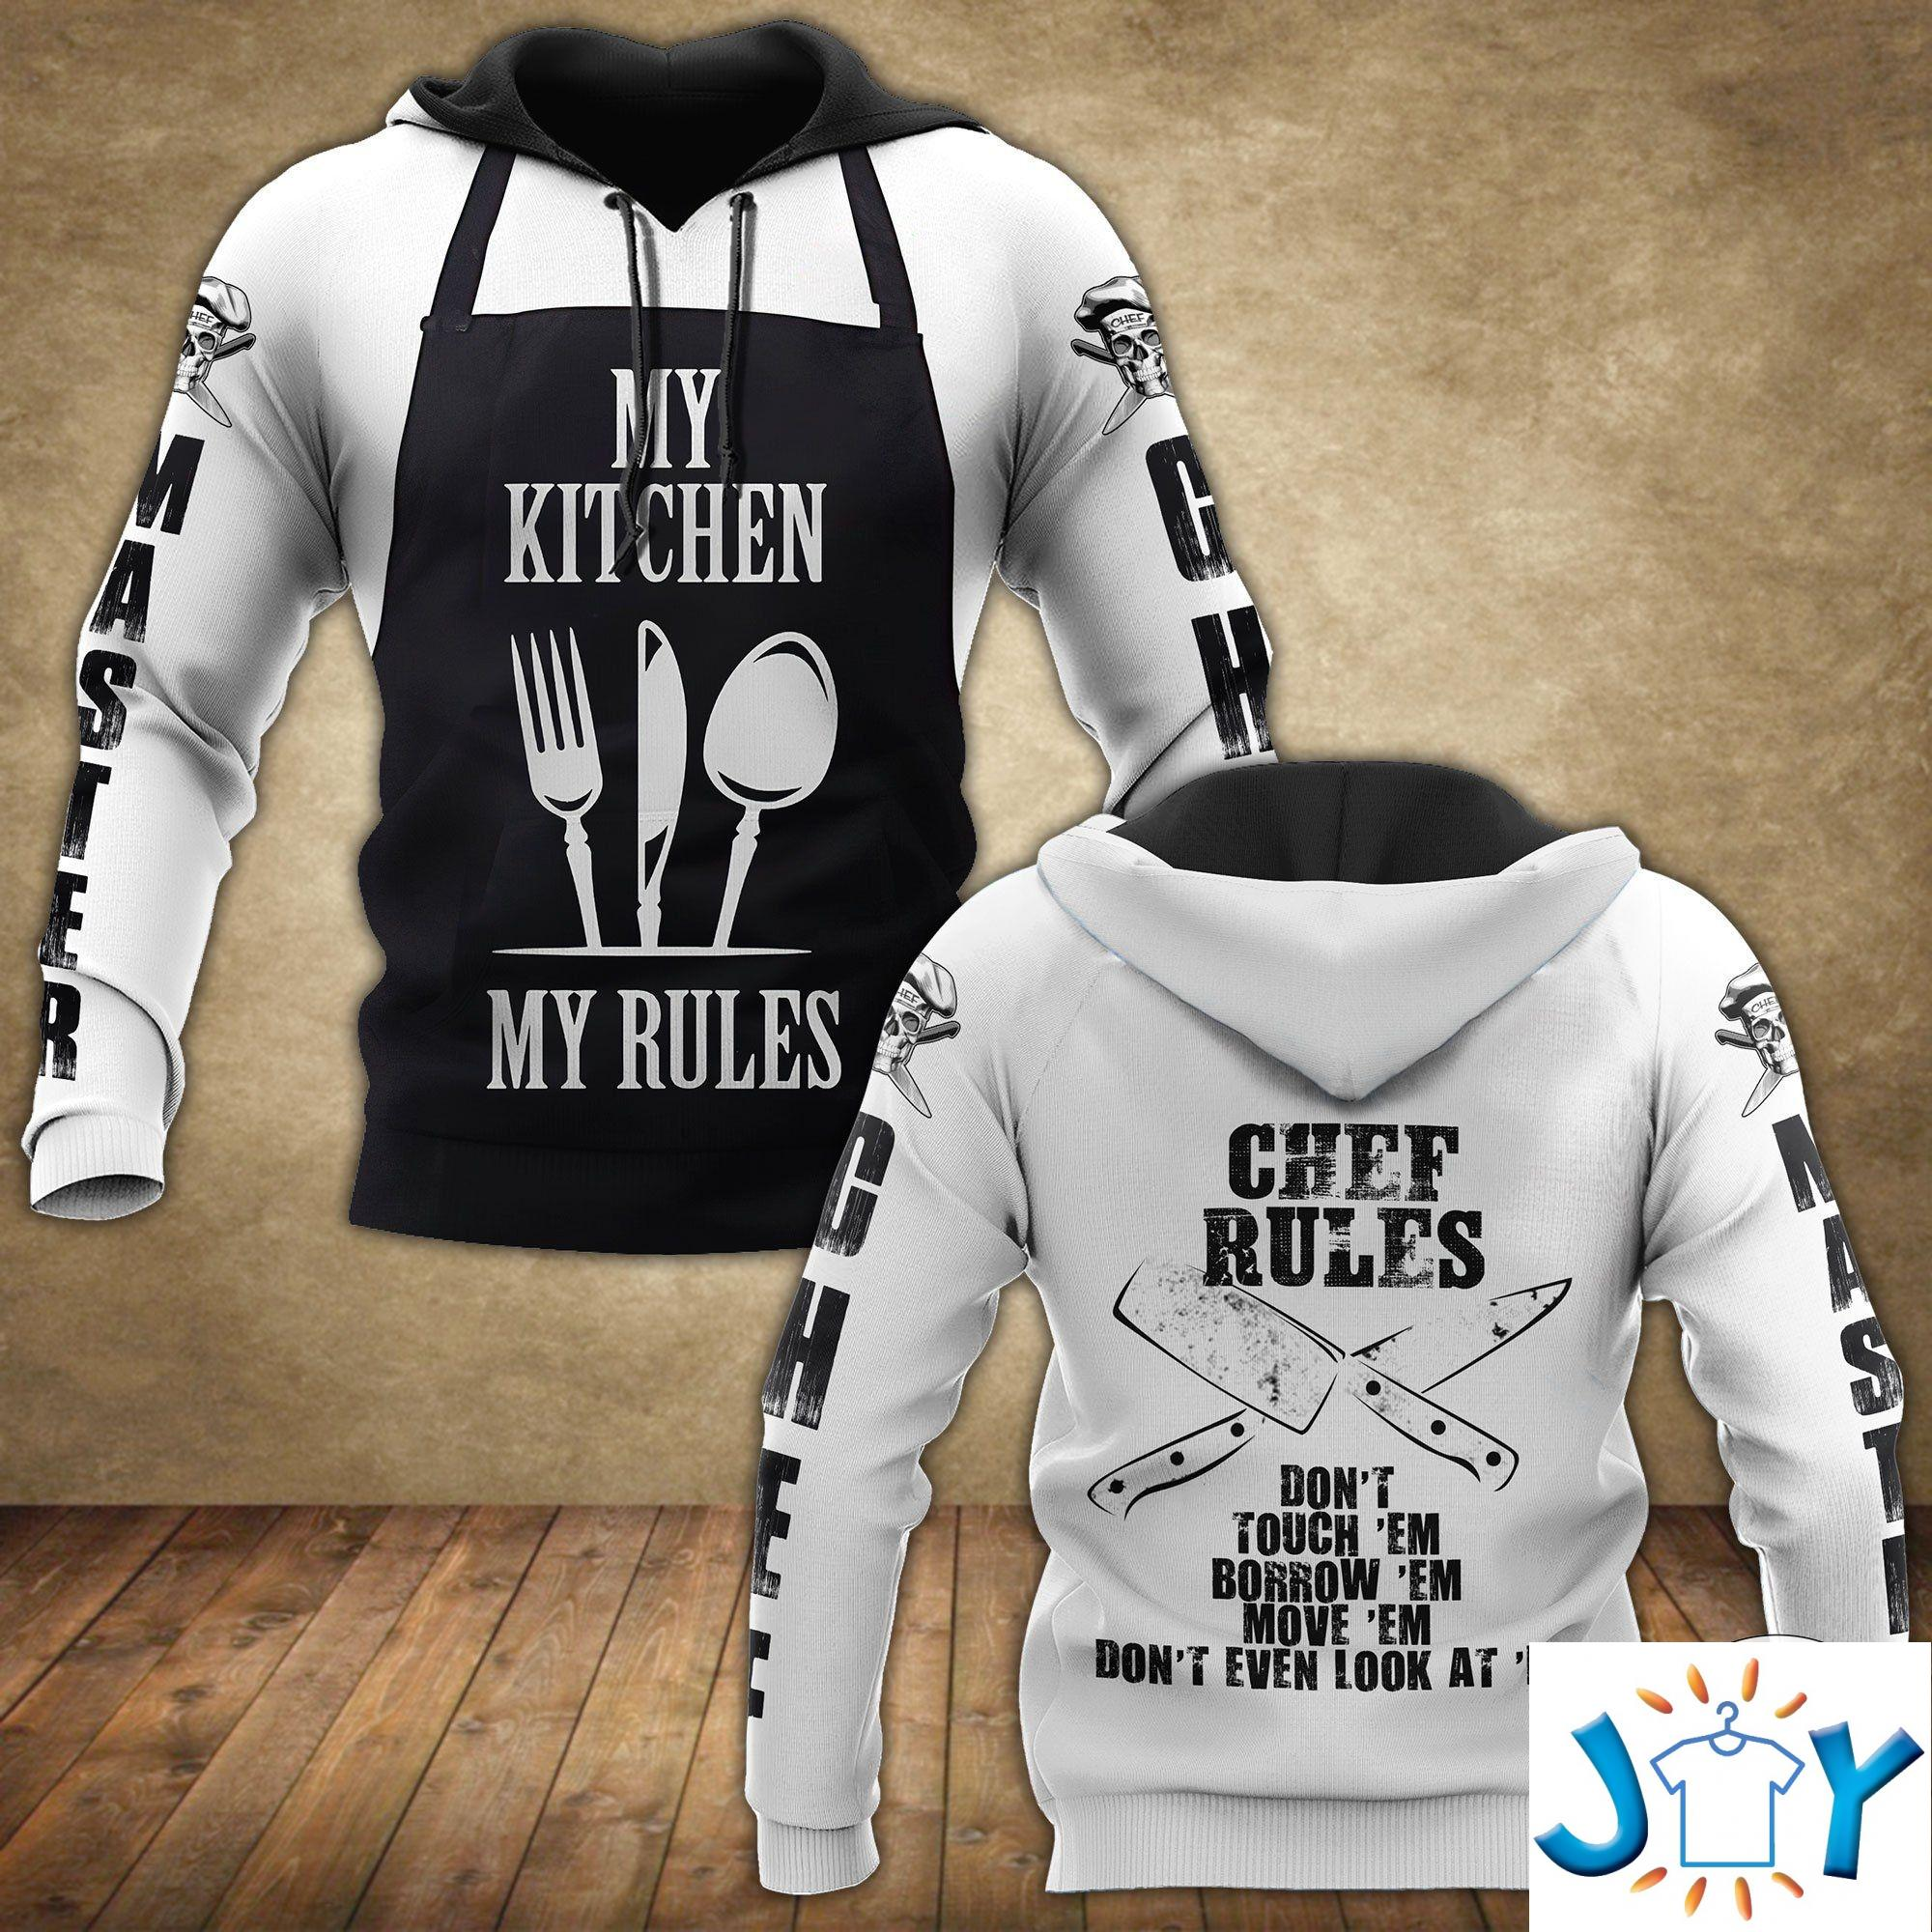 My kitchen my rules chef rules don't touch 'em borrow 'em move 'em 3D hoodie